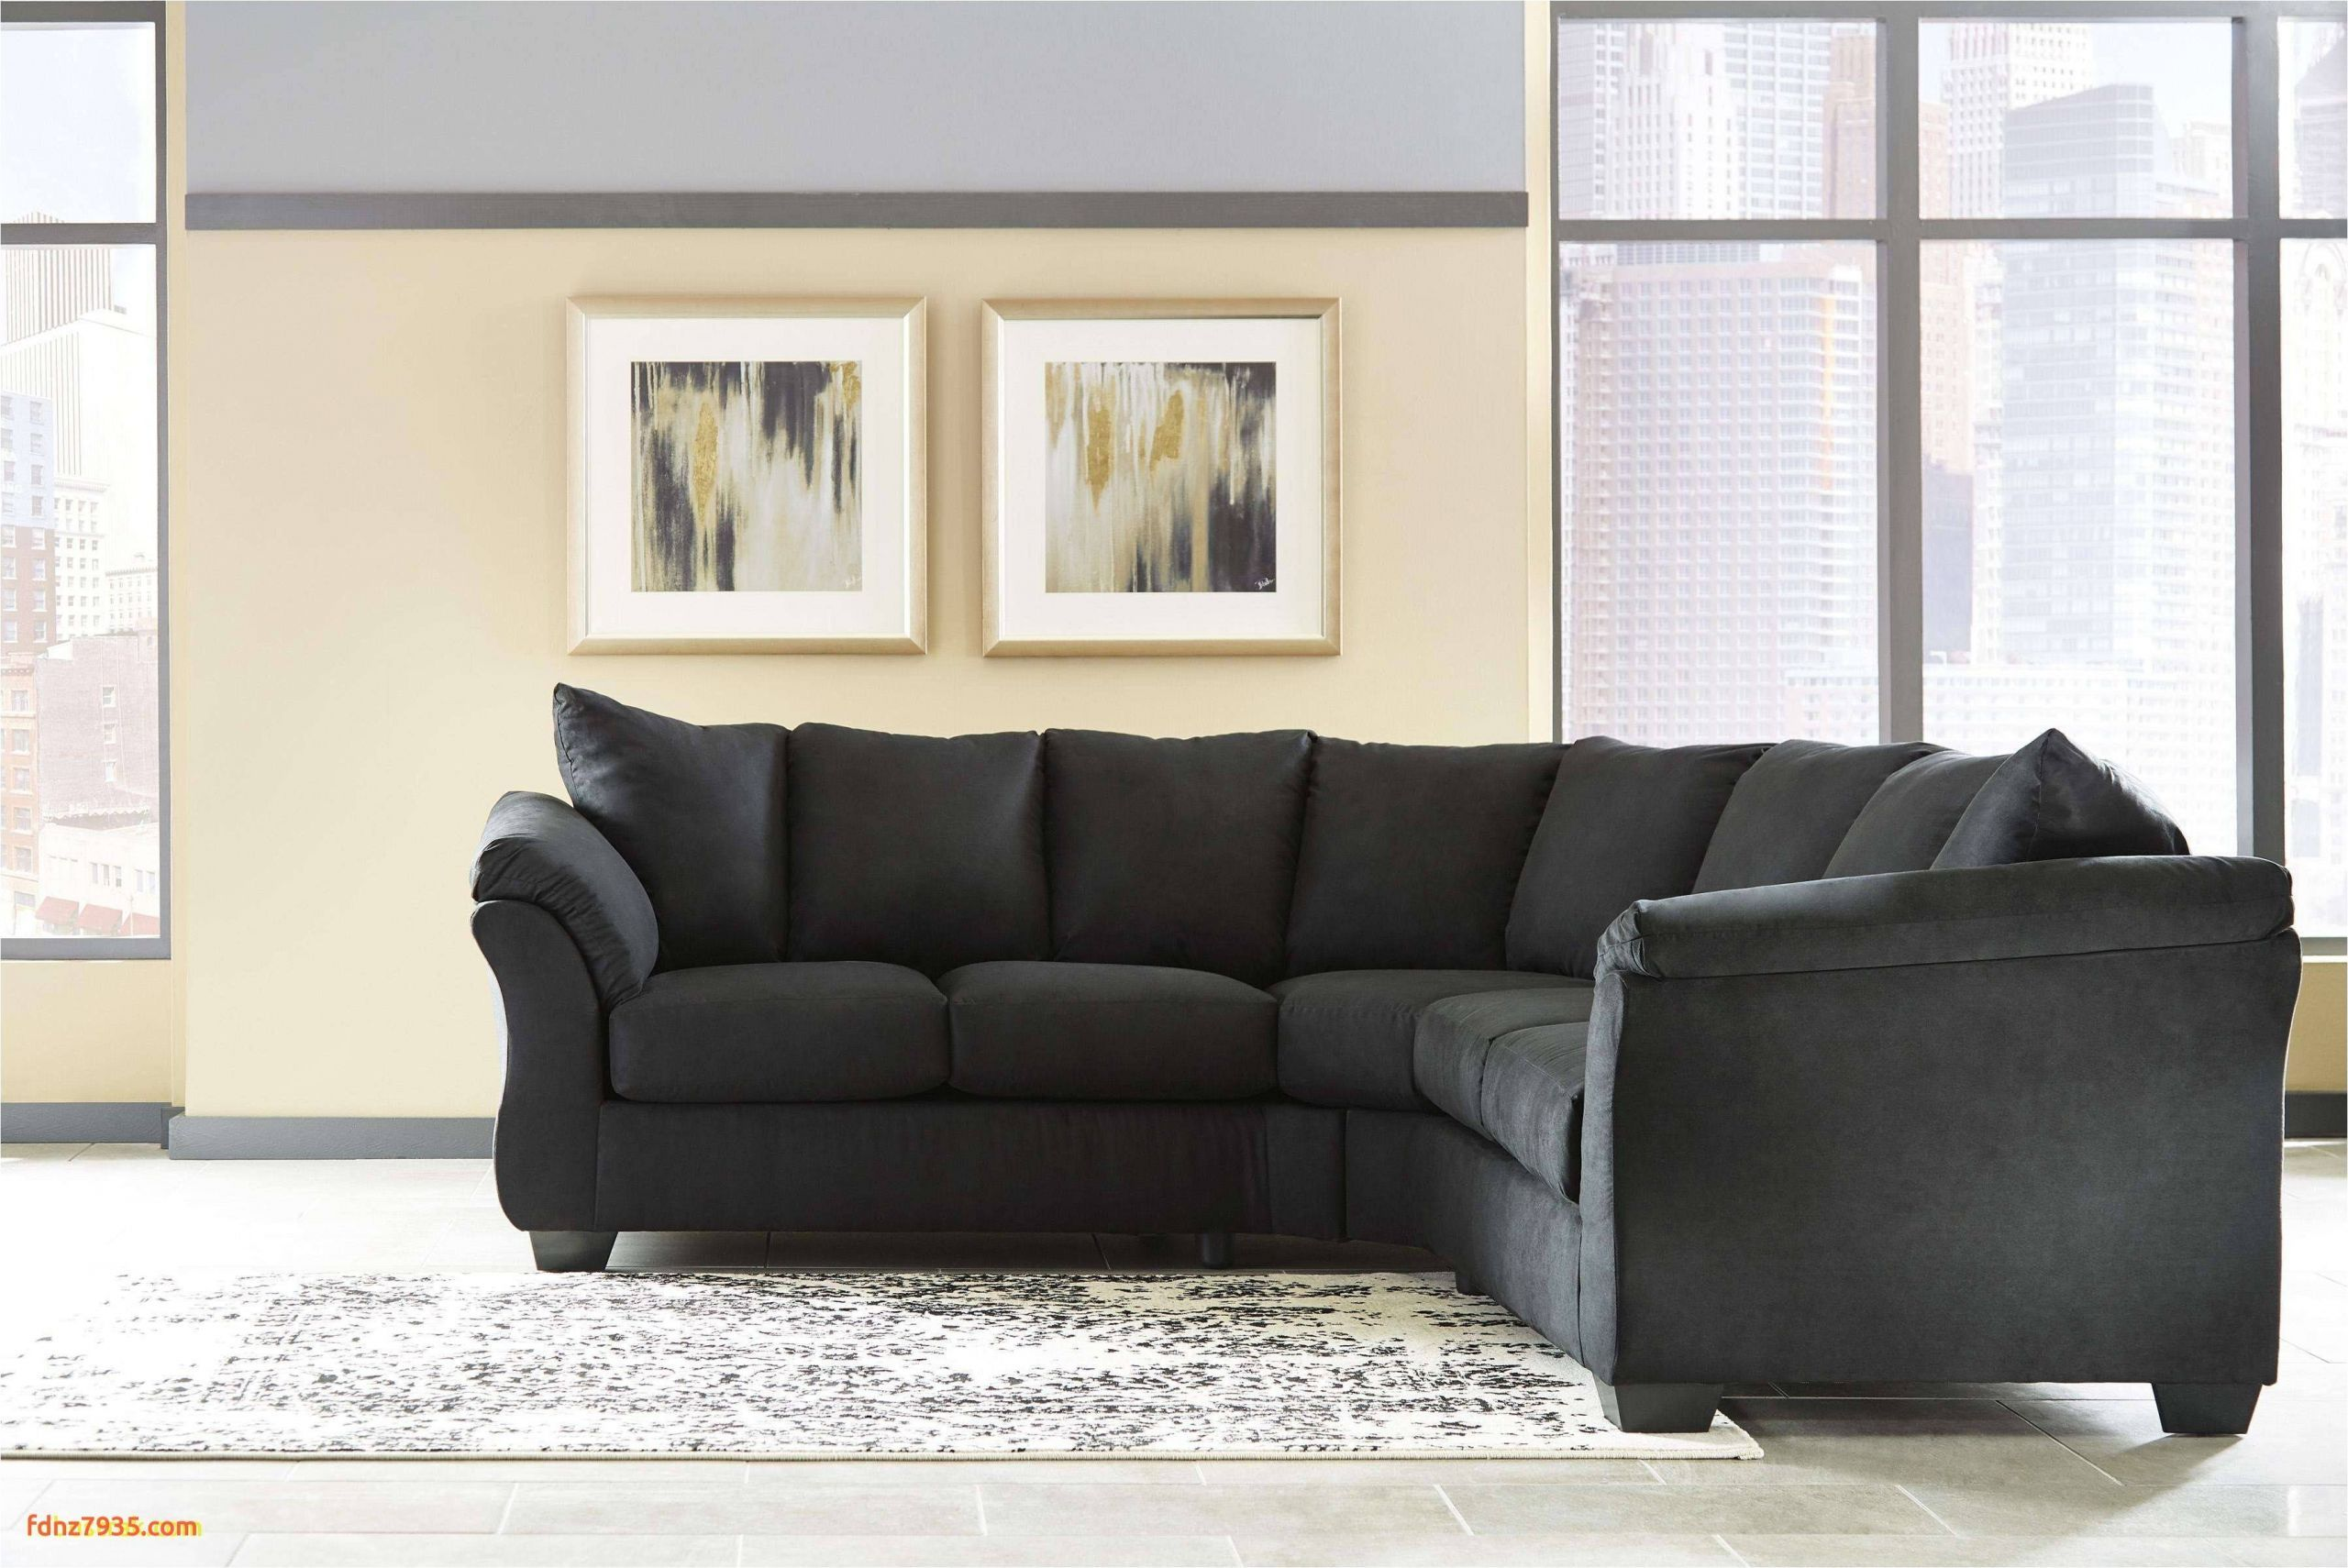 White Leather Couch Grey Sectional Sofa Sectional Sofa With Chaise Sofa Design